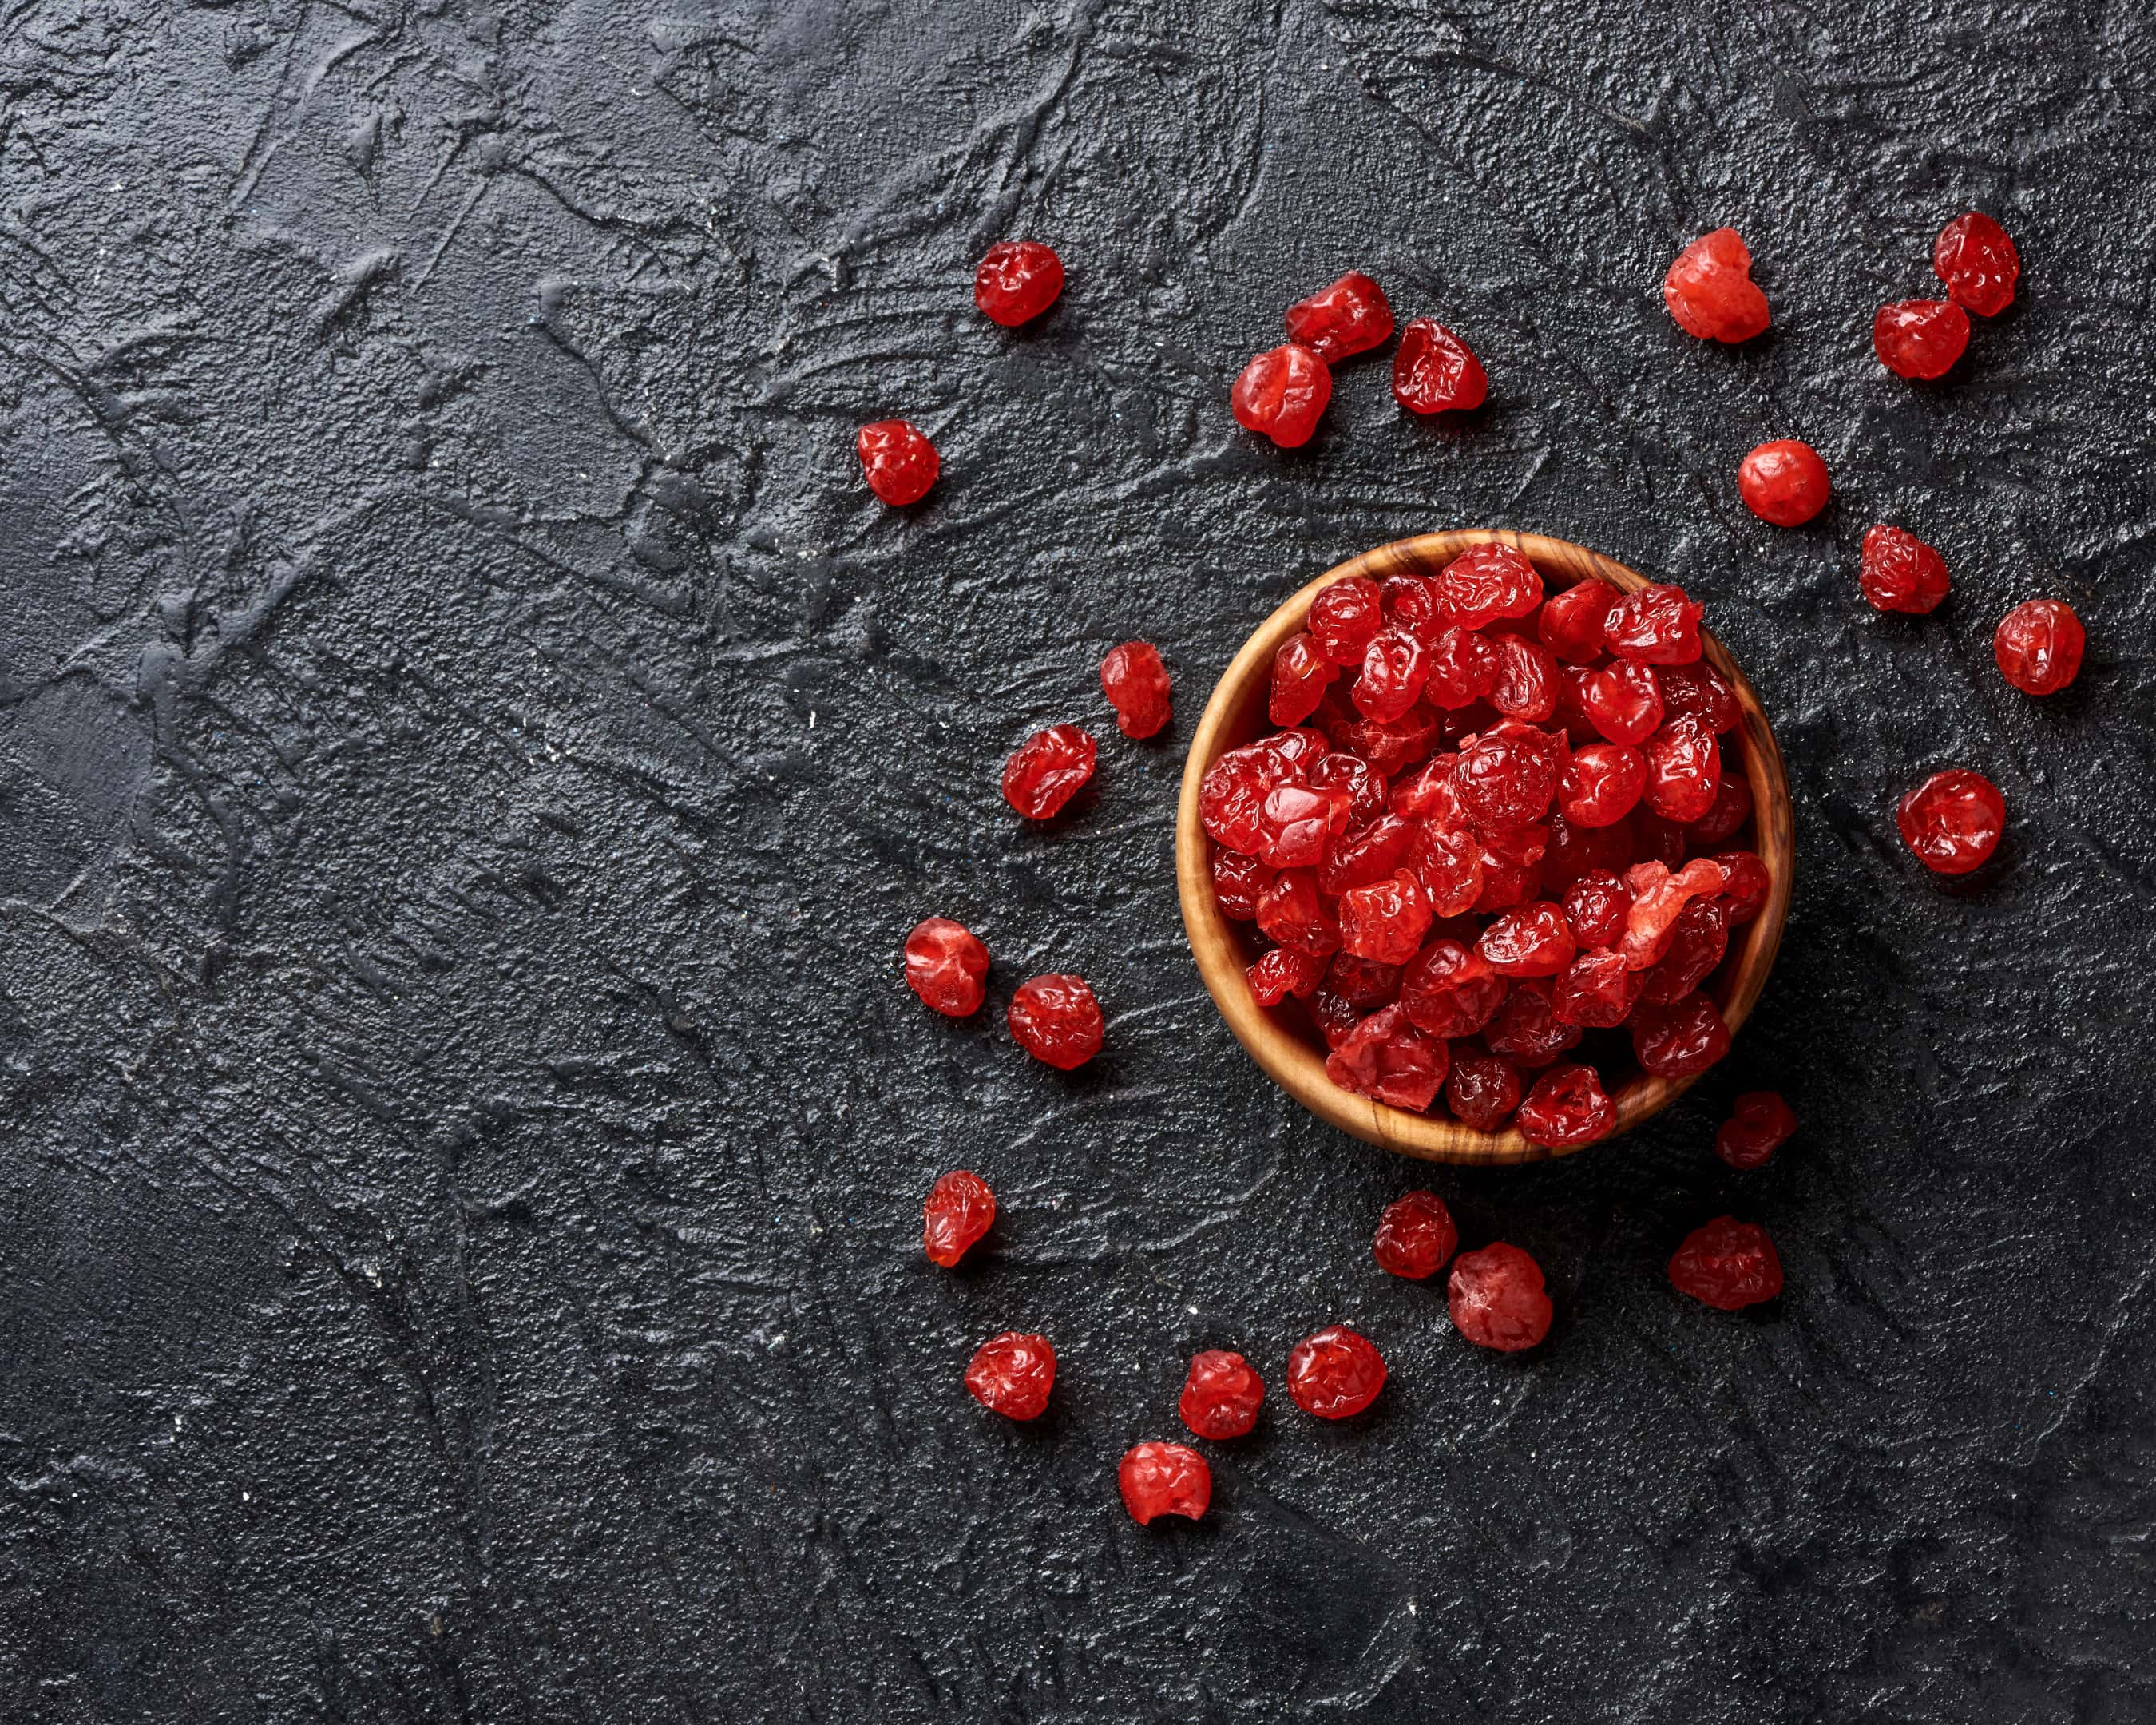 Dried red cherries on black surface